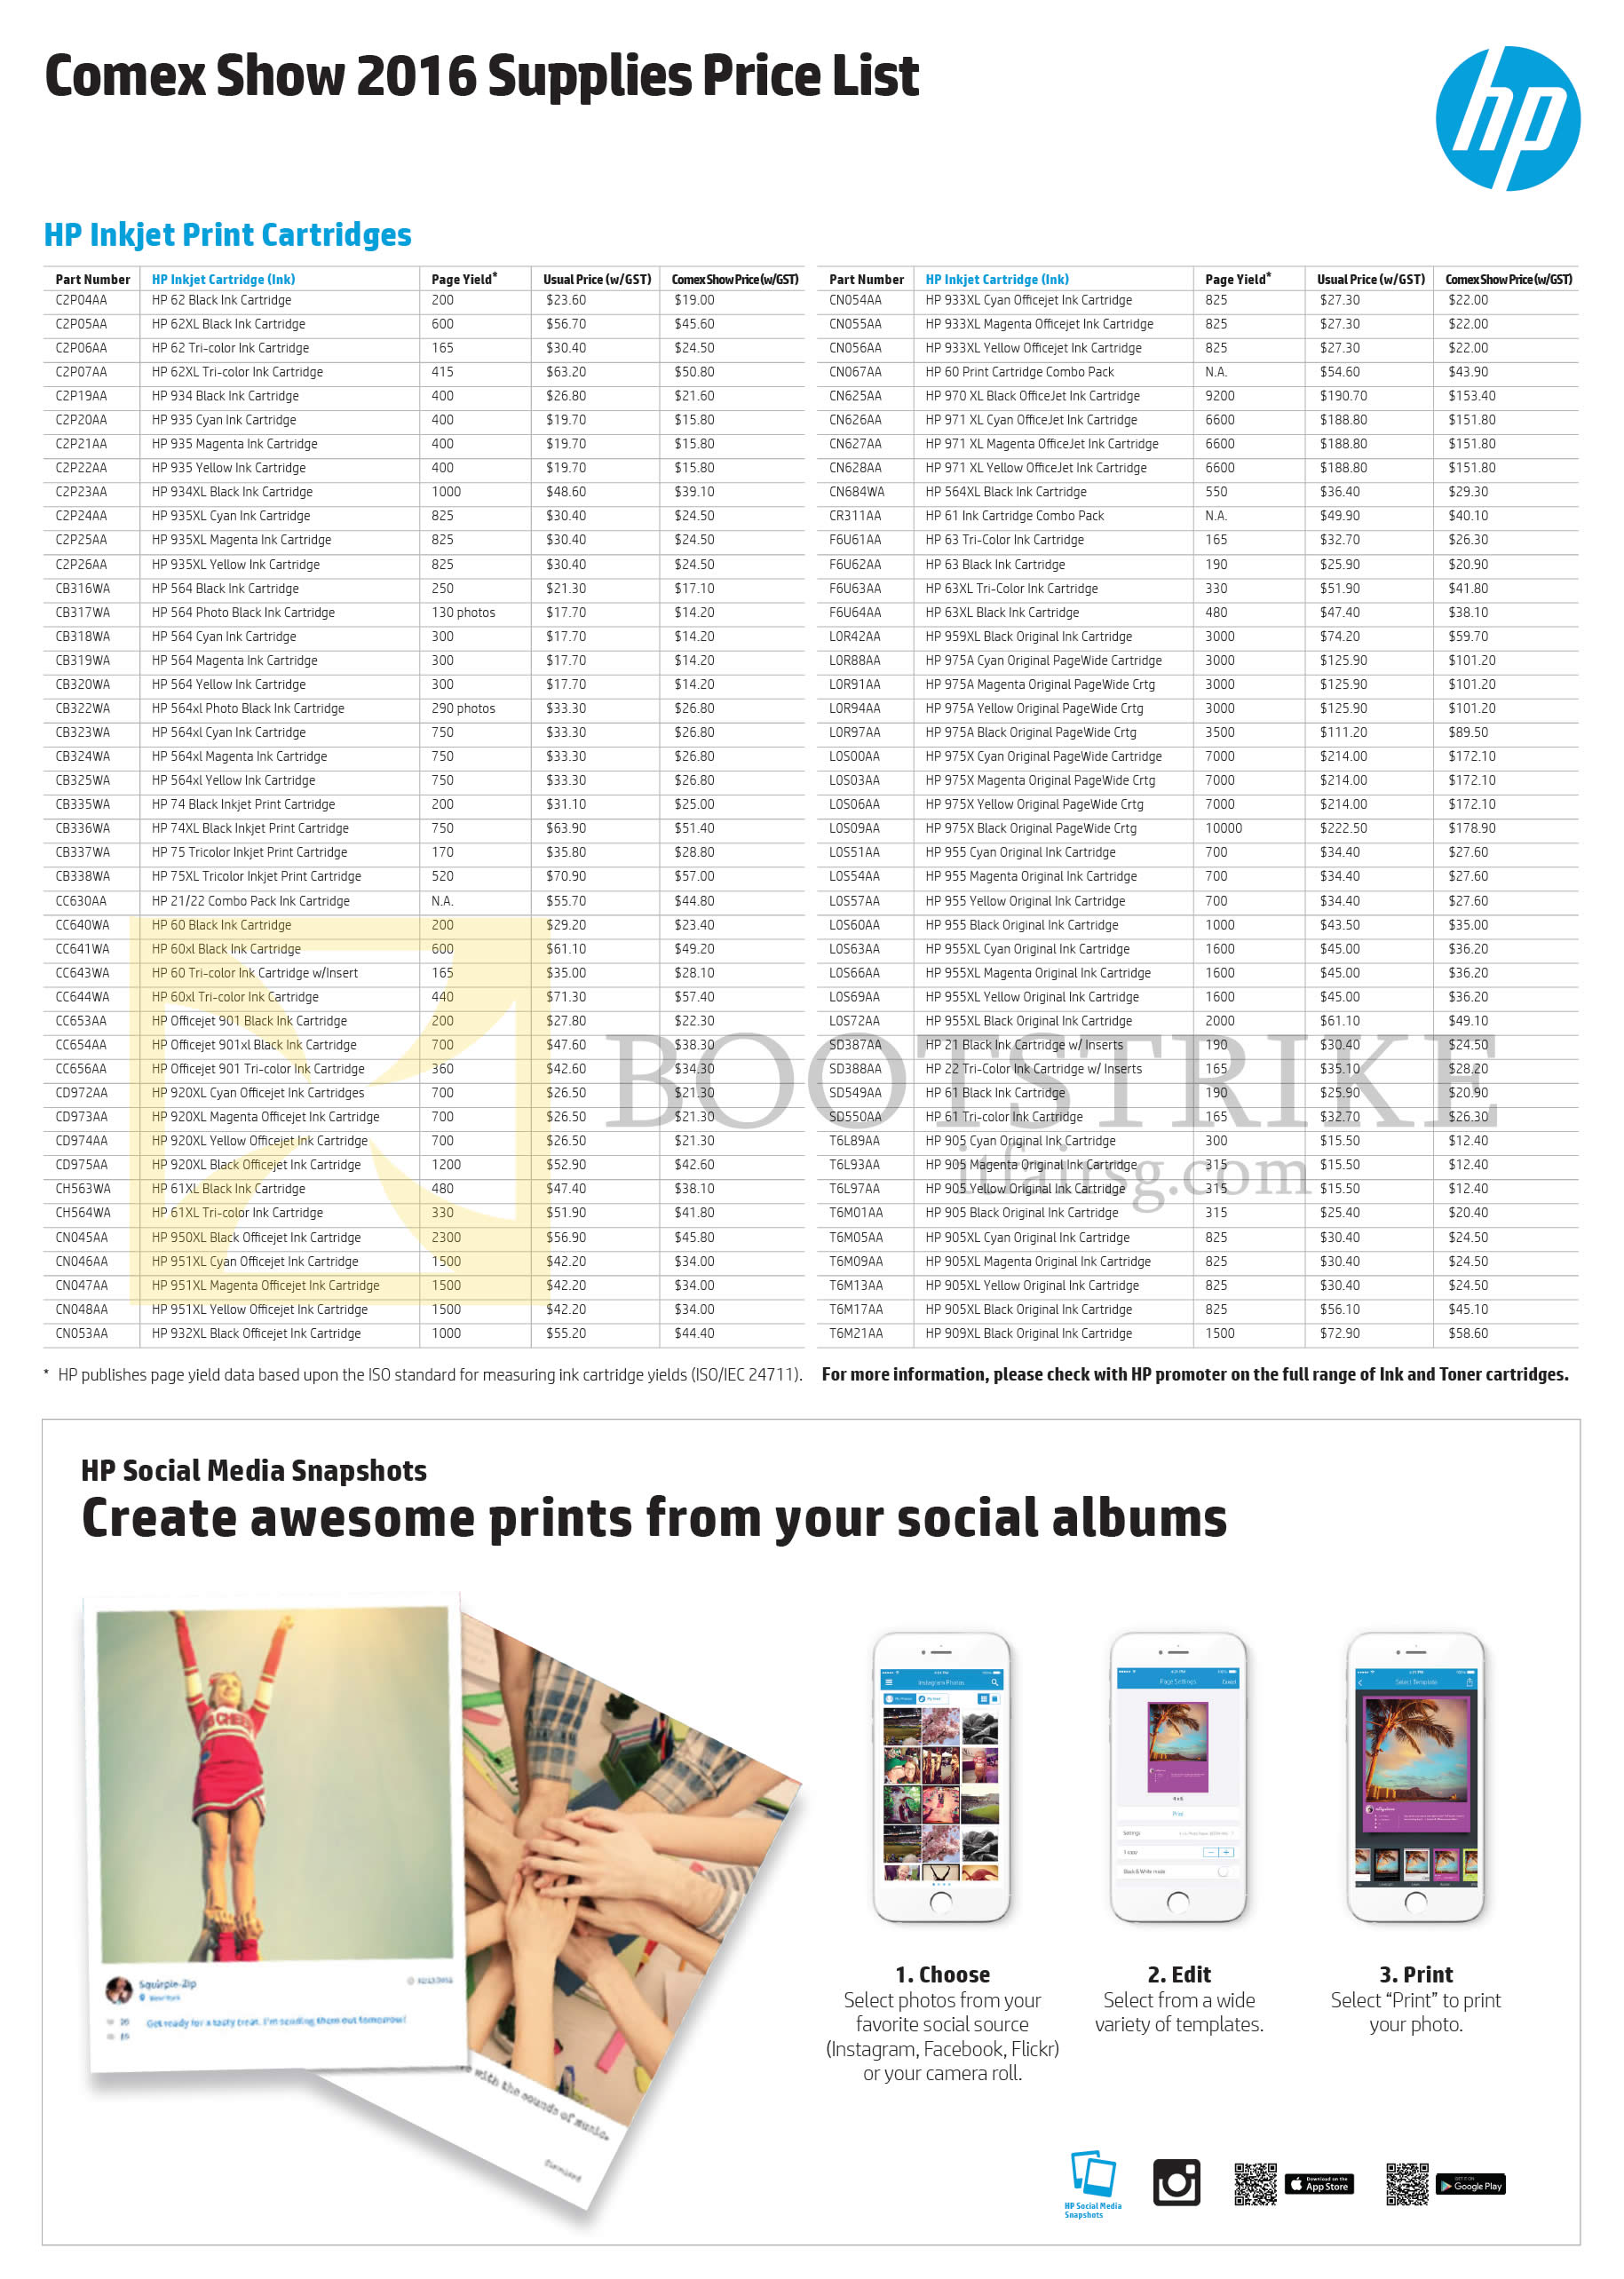 COMEX 2016 price list image brochure of HP Inkjet Print Cartridges Pricelist